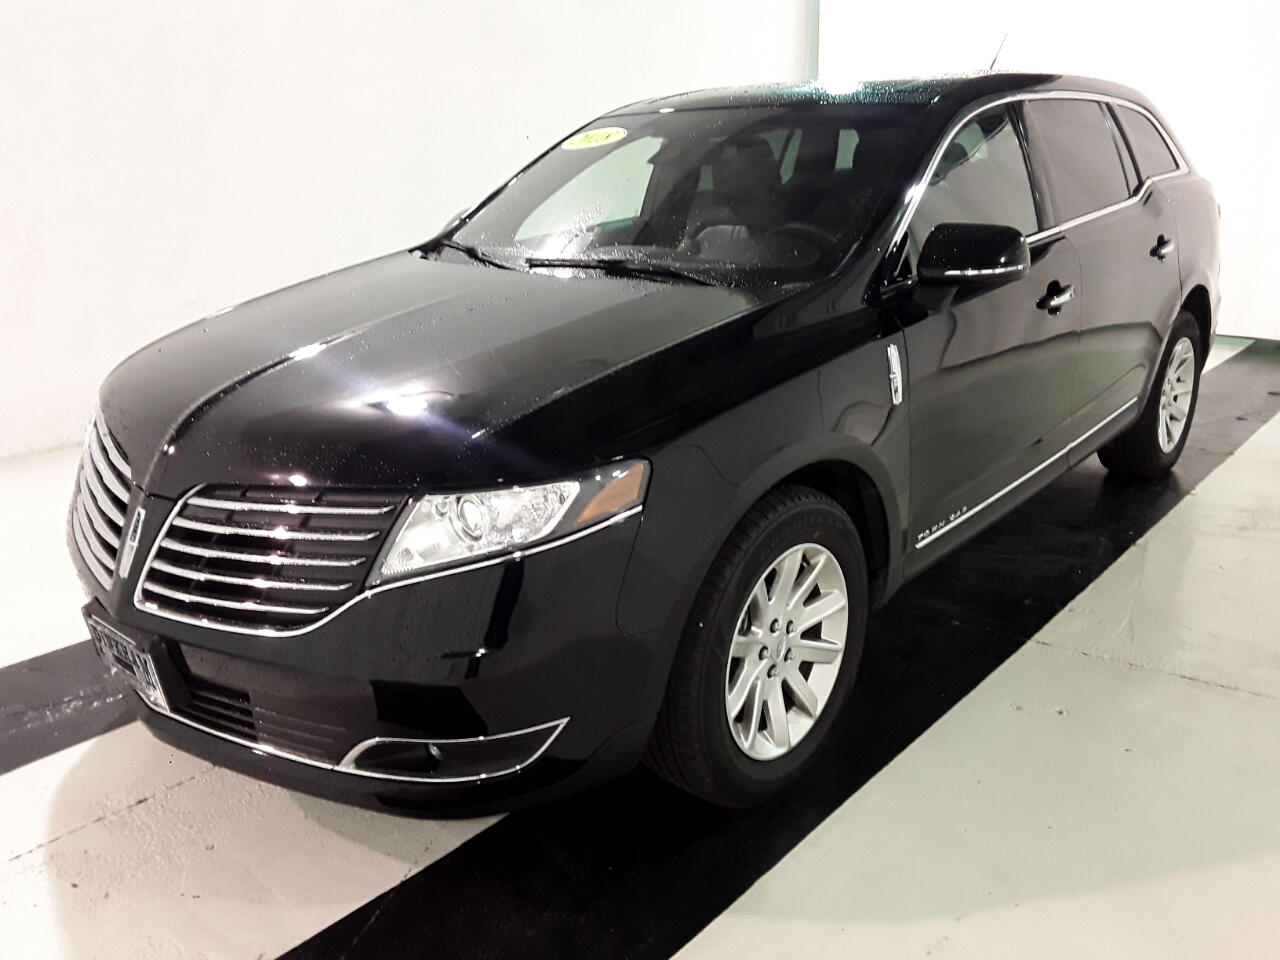 2018 Lincoln MKT 3.7L AWD w/Livery Pkg